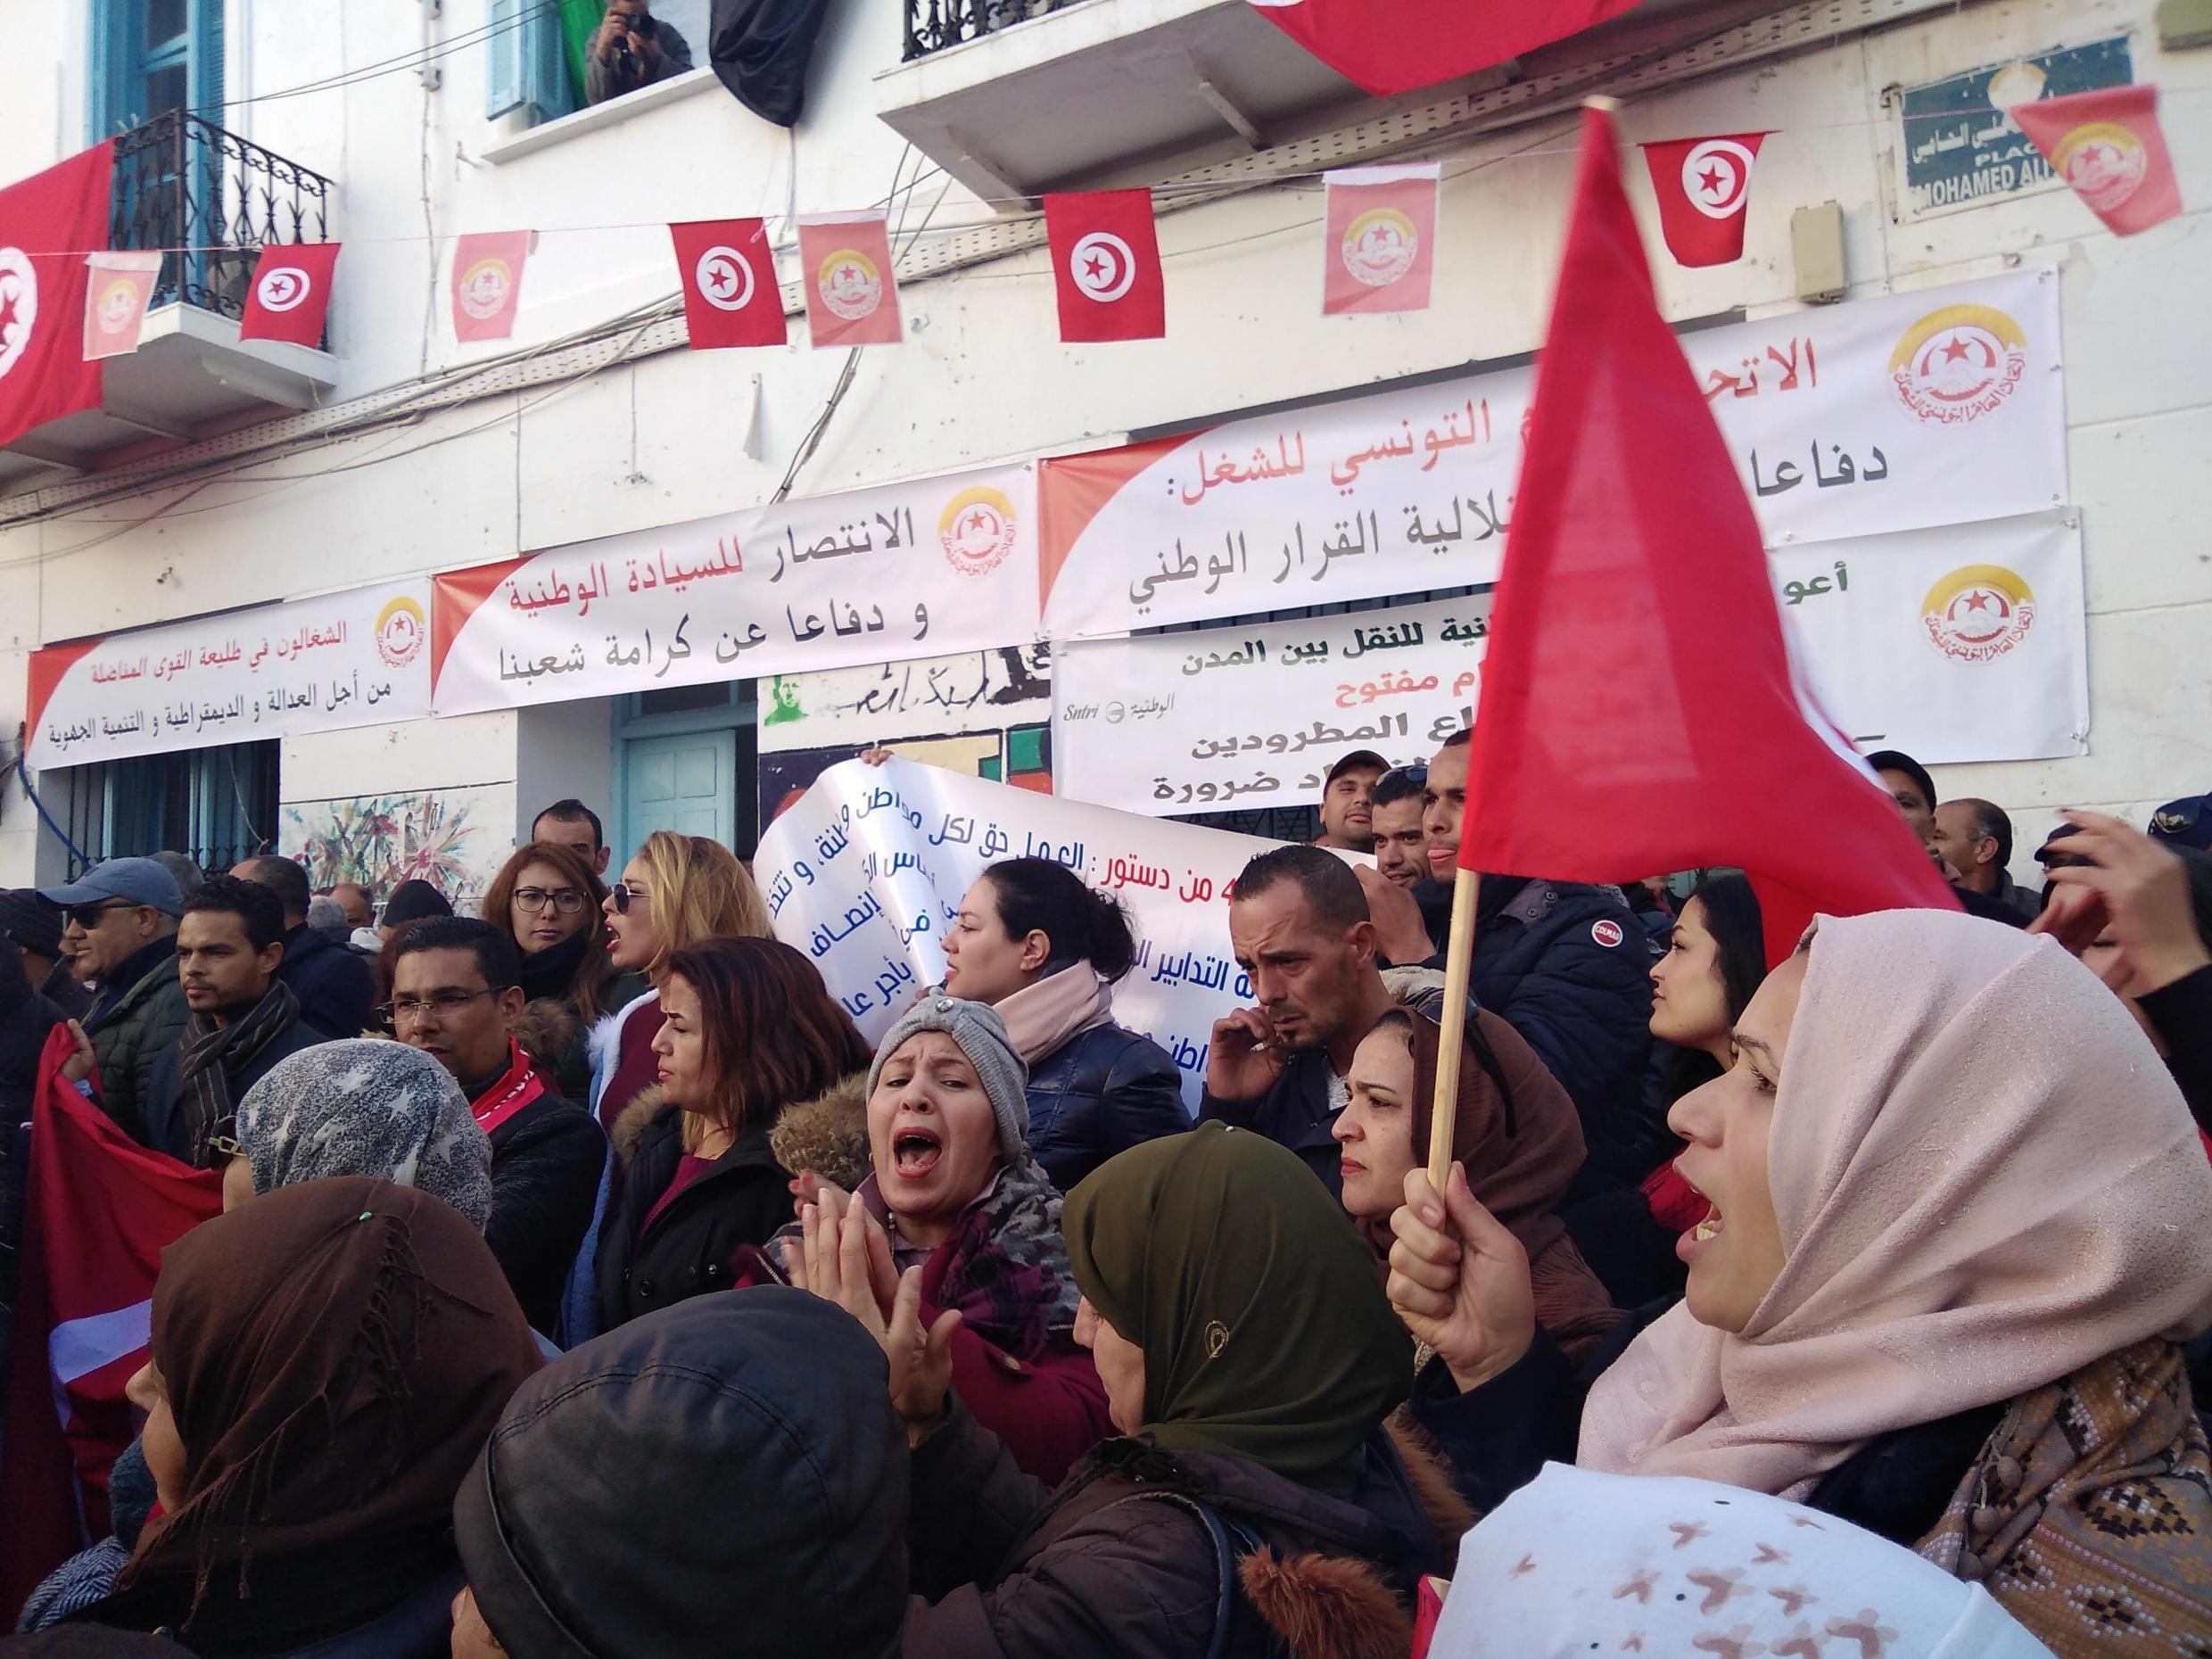 Tunisians protest the lack of change since the 2011 revolution.